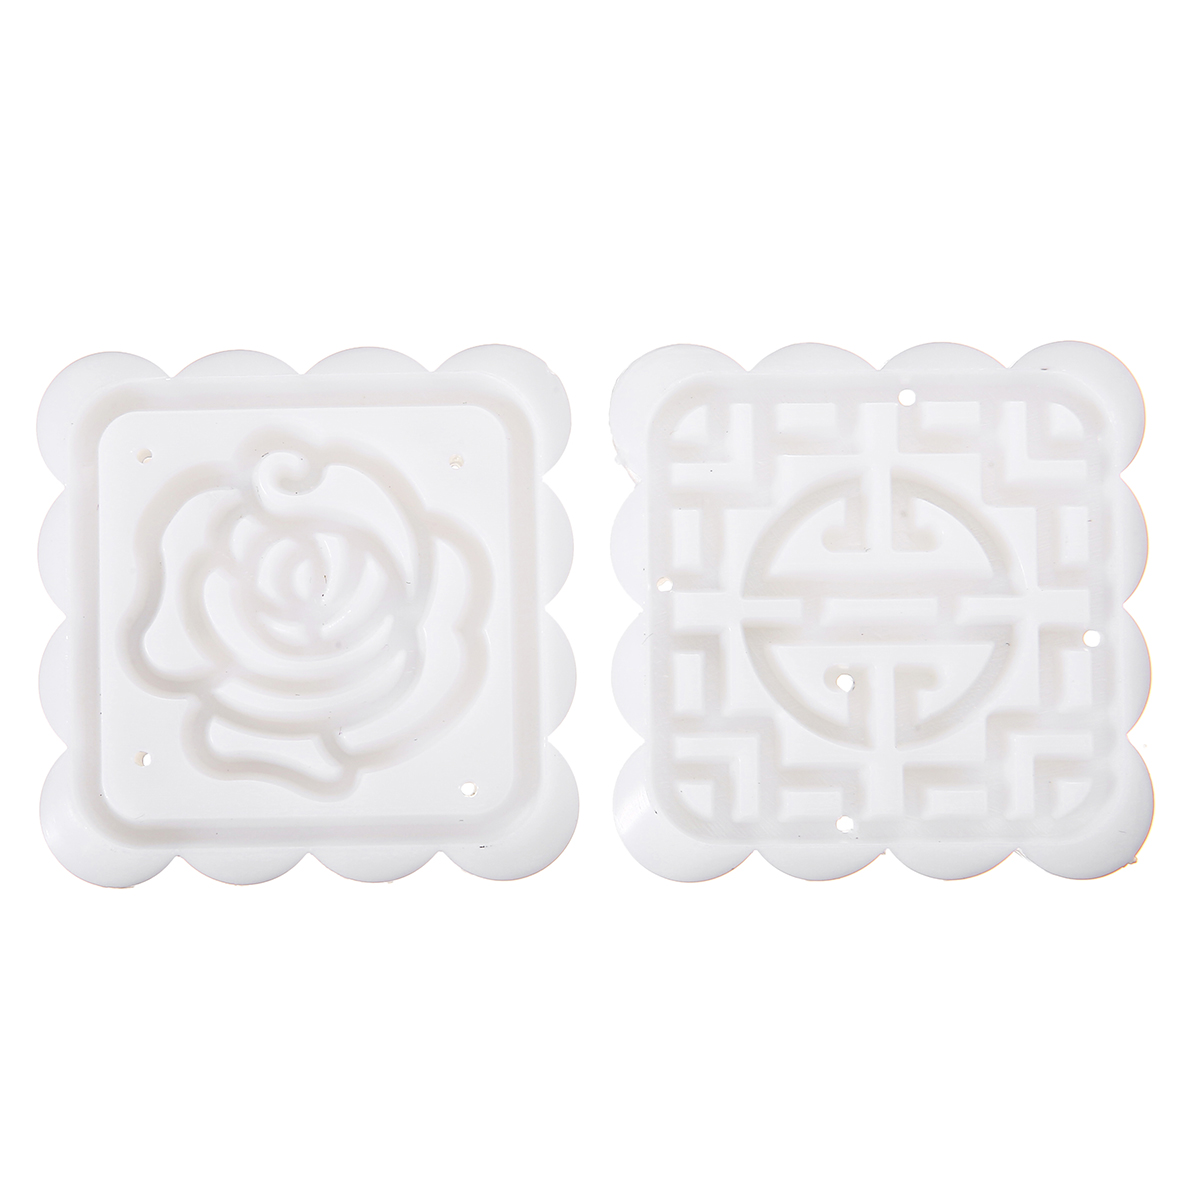 Moon Cake Mooncake Decoration Mold Mould Flowers Square 4 Stamps Pastry DIY Baking Mold